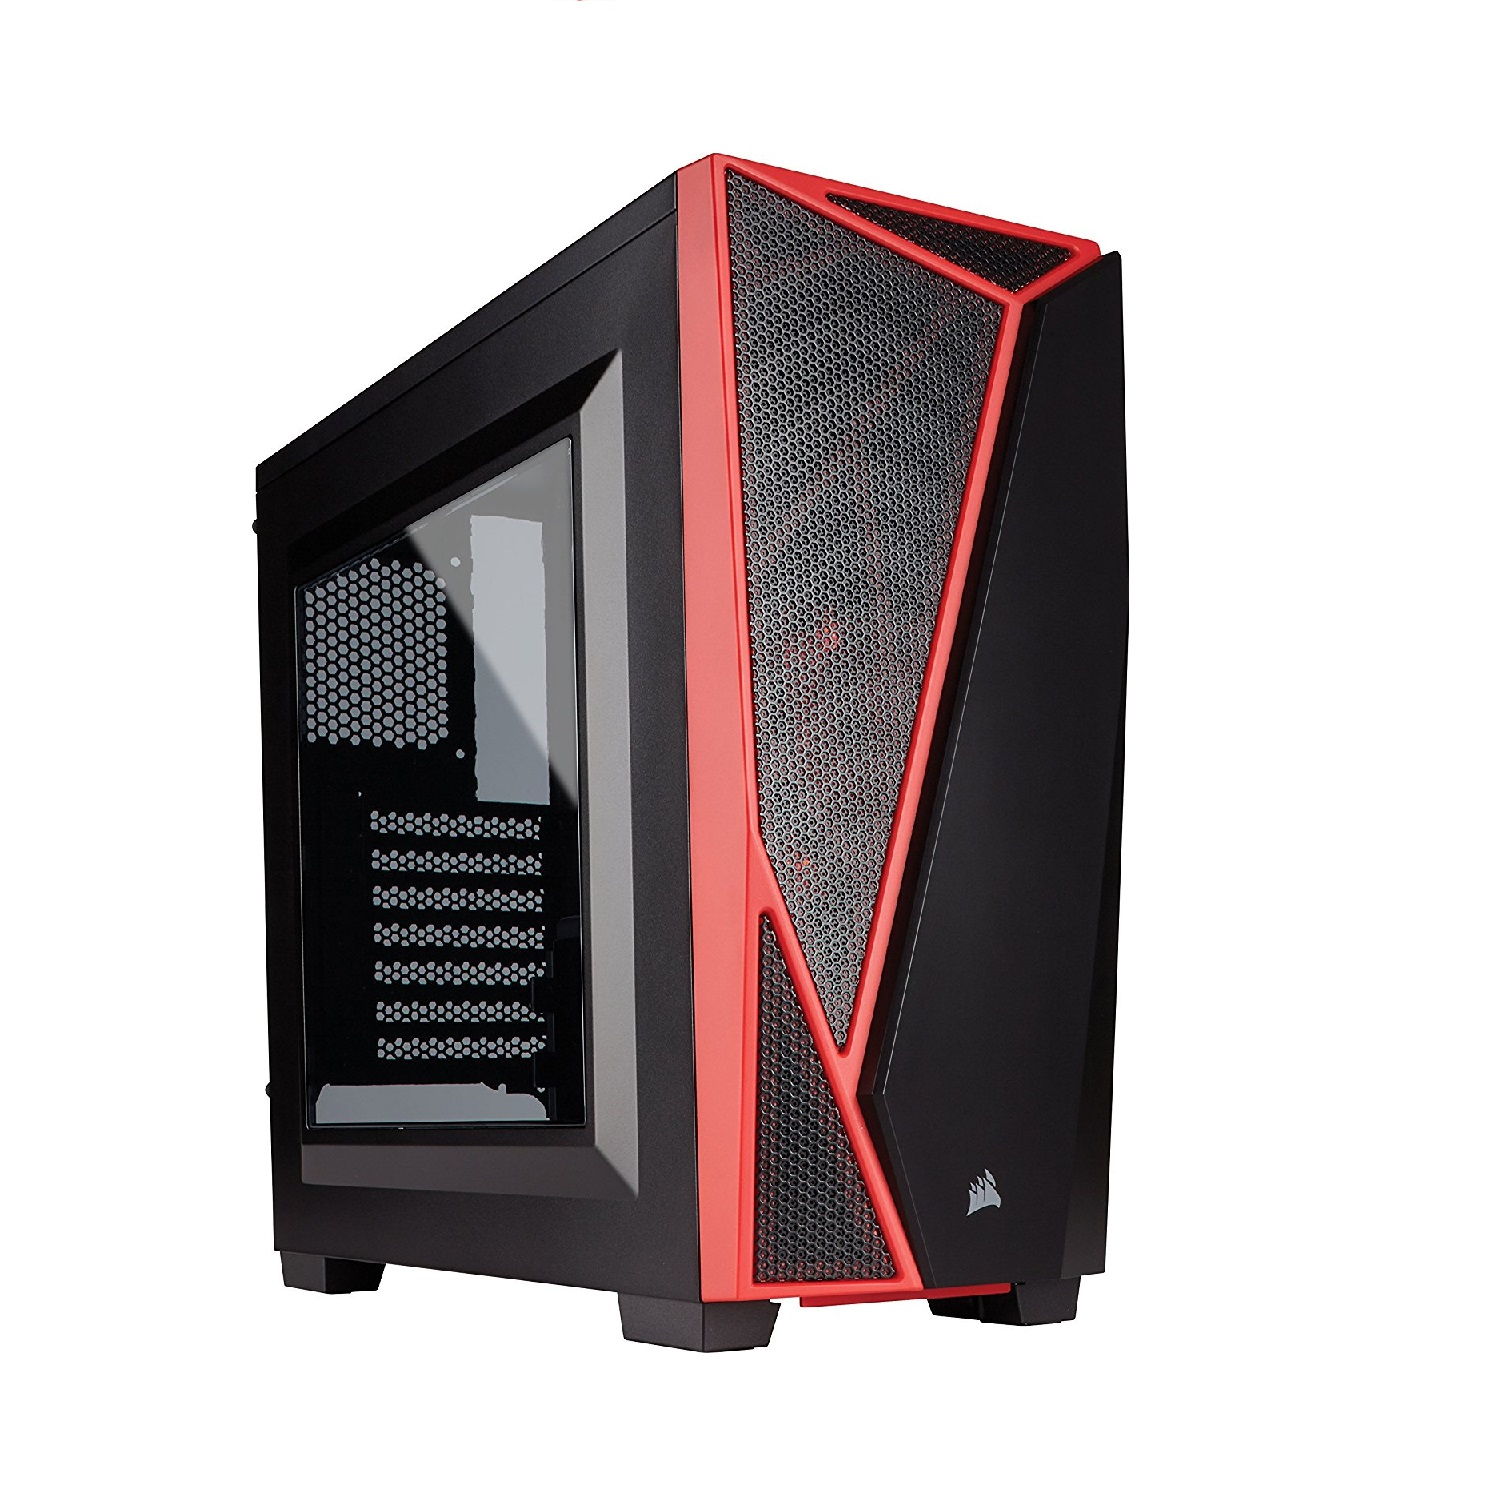 CORSAIR Carbide SPEC-04 Mid-Tower Gaming Case - Black and Red - CC-9011107-WW